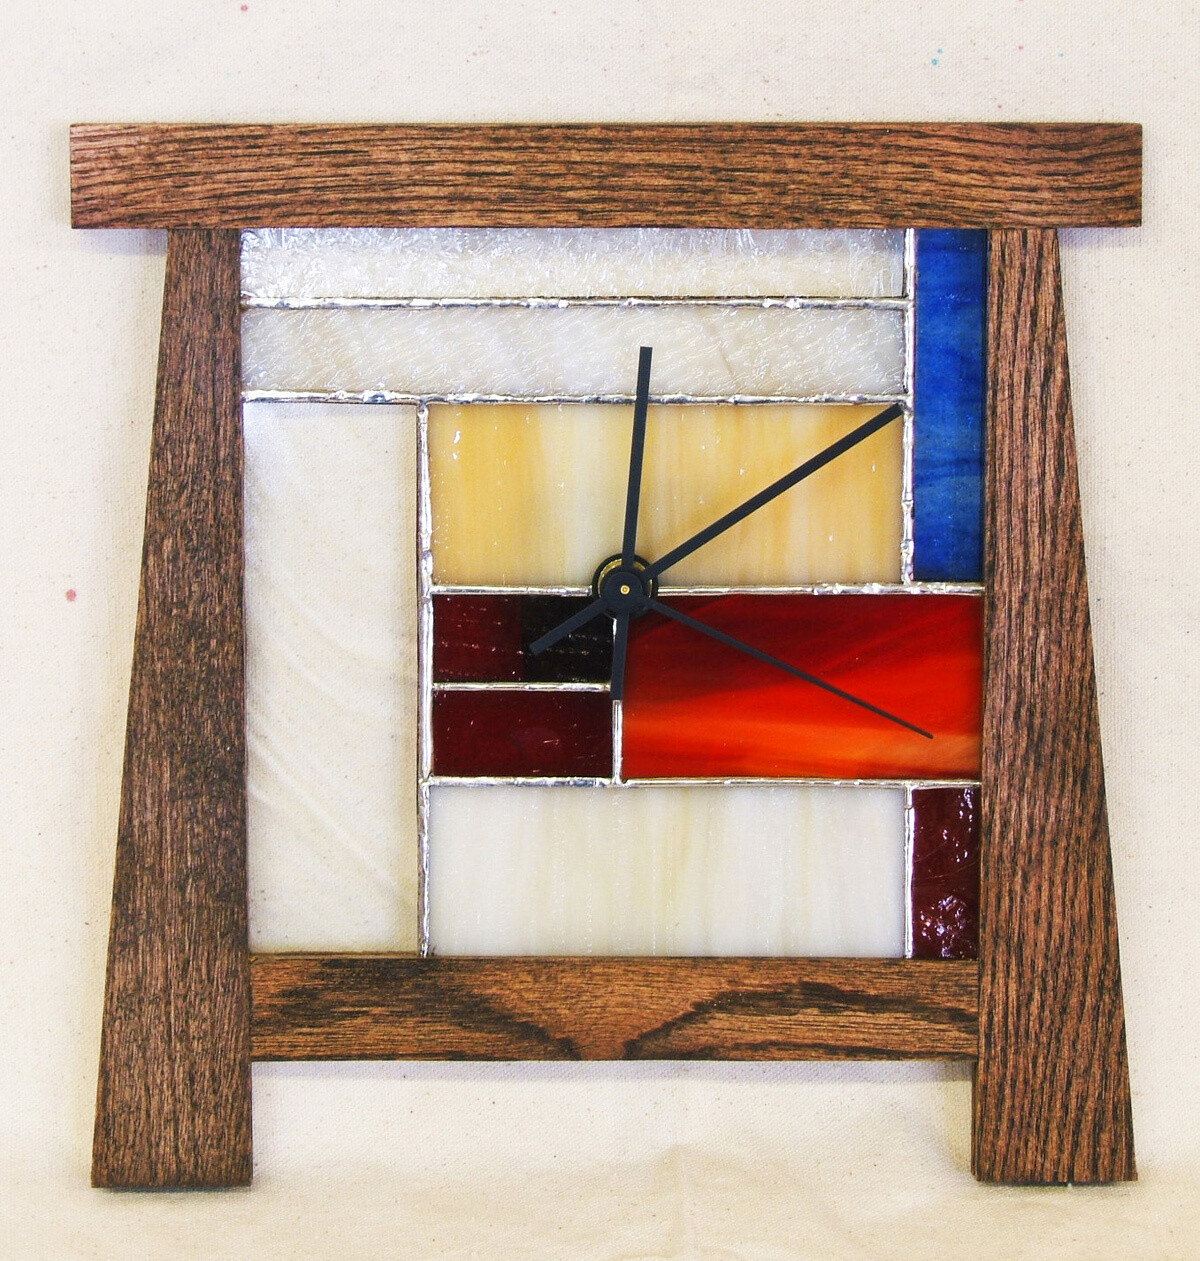 Mission Style Standing Window Clock